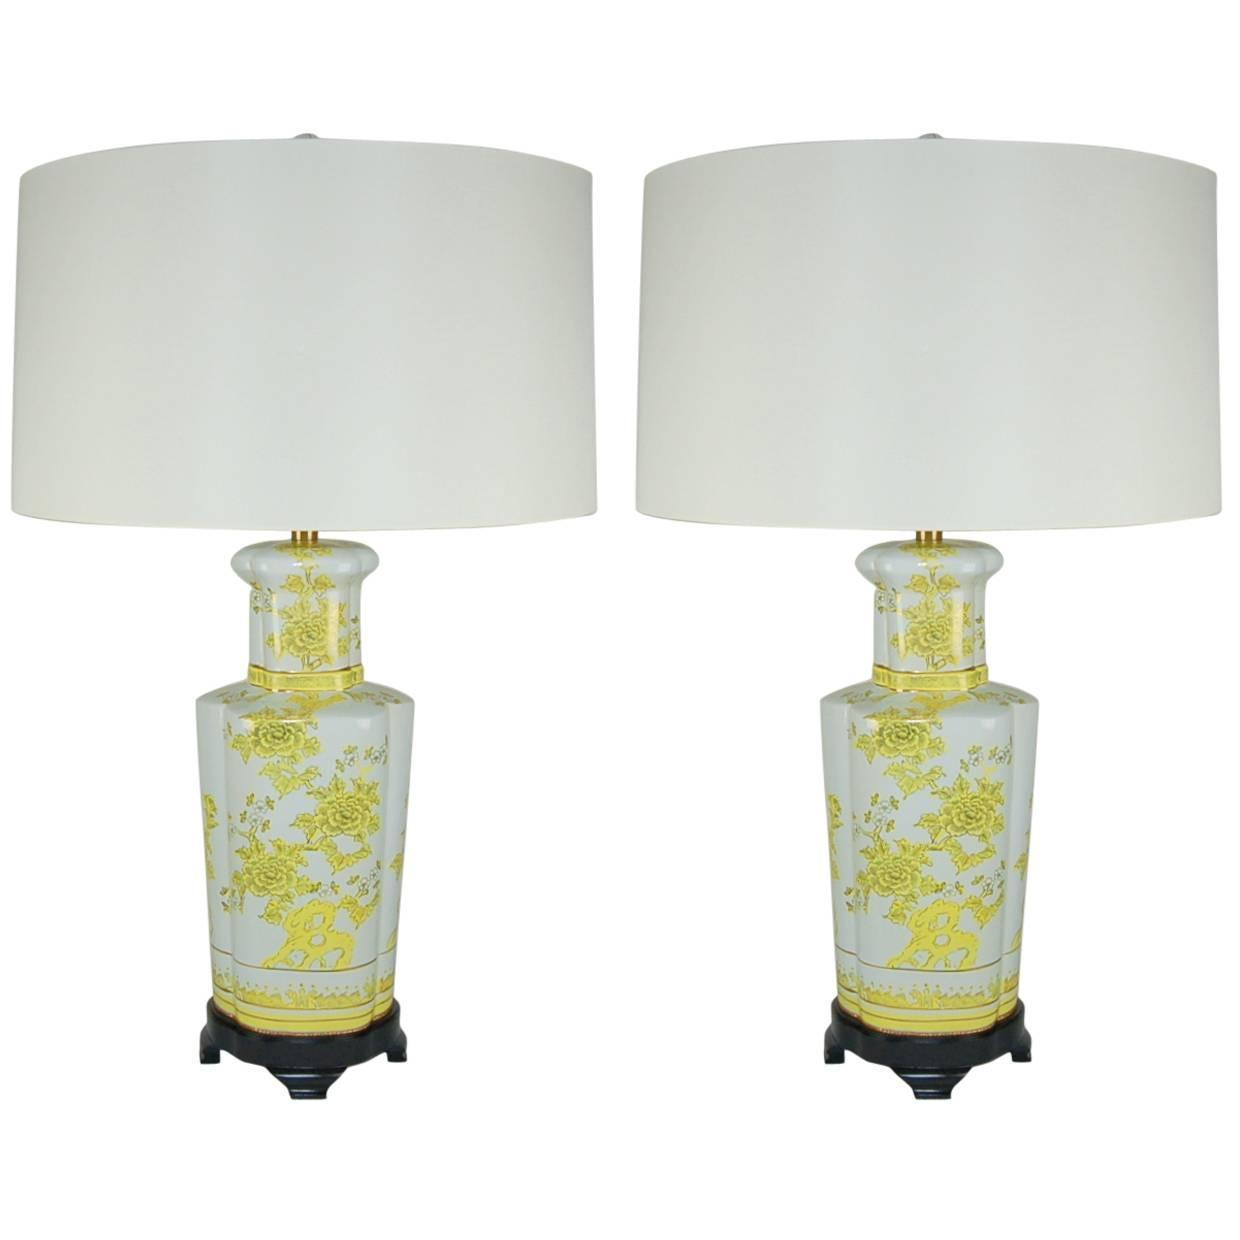 Pair of Vintage Porcelain Lamps by The Marbro Lamp Company